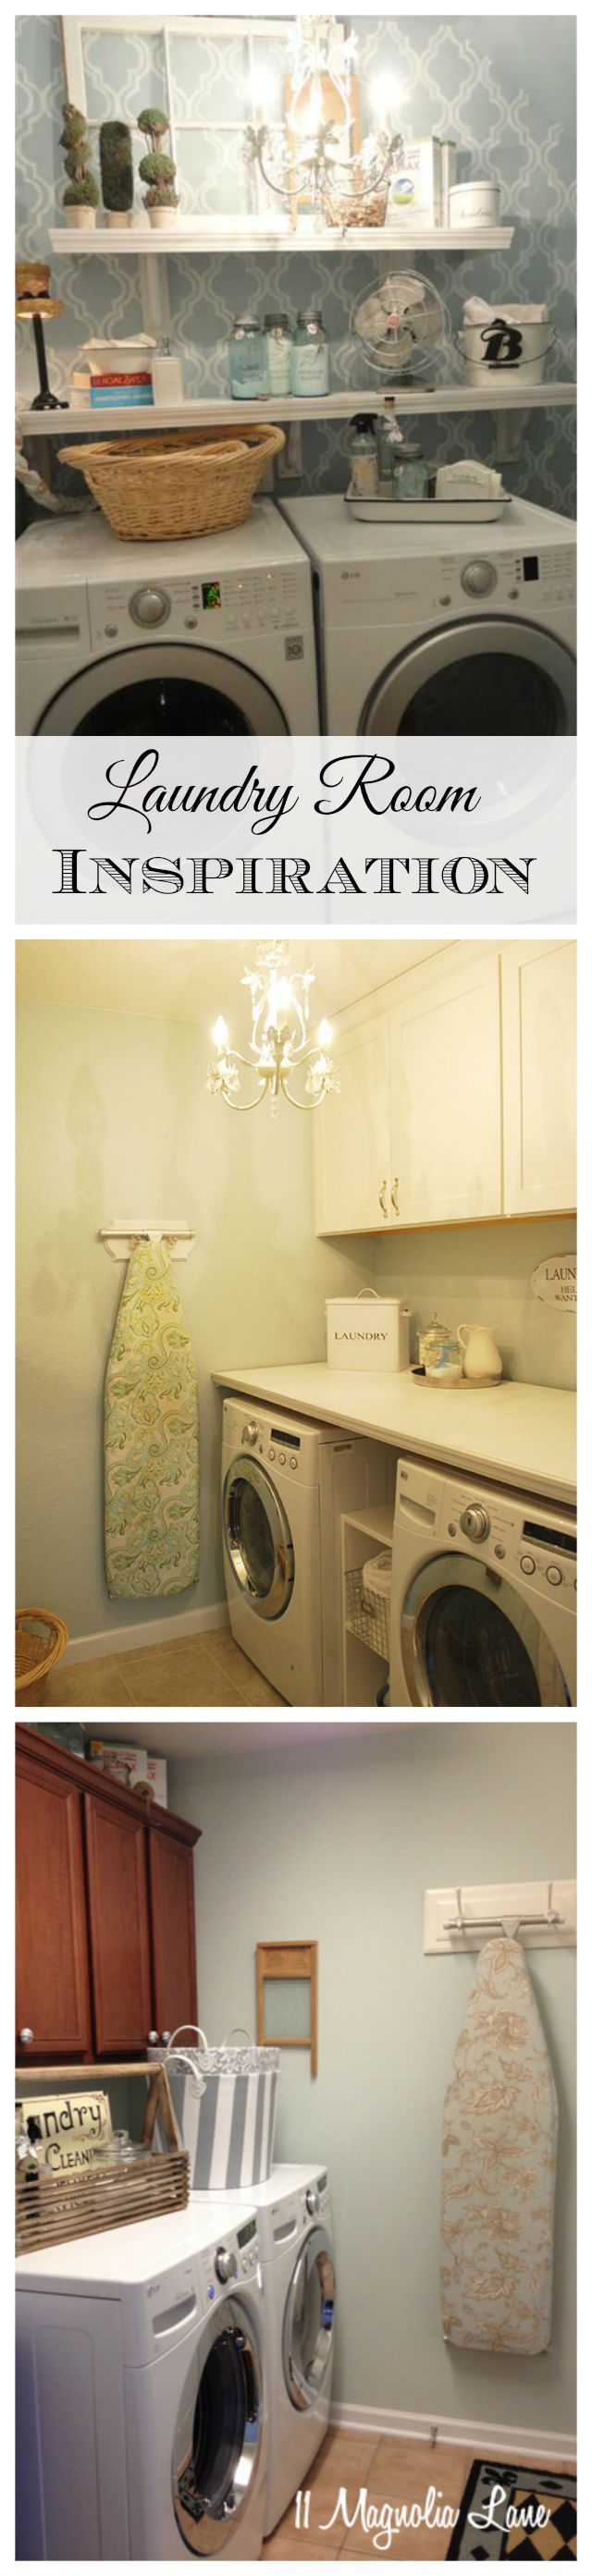 1349 best laundry stylin images on pinterest laundry closet 1349 best laundry stylin images on pinterest laundry closet laundry decor and laundry room signs